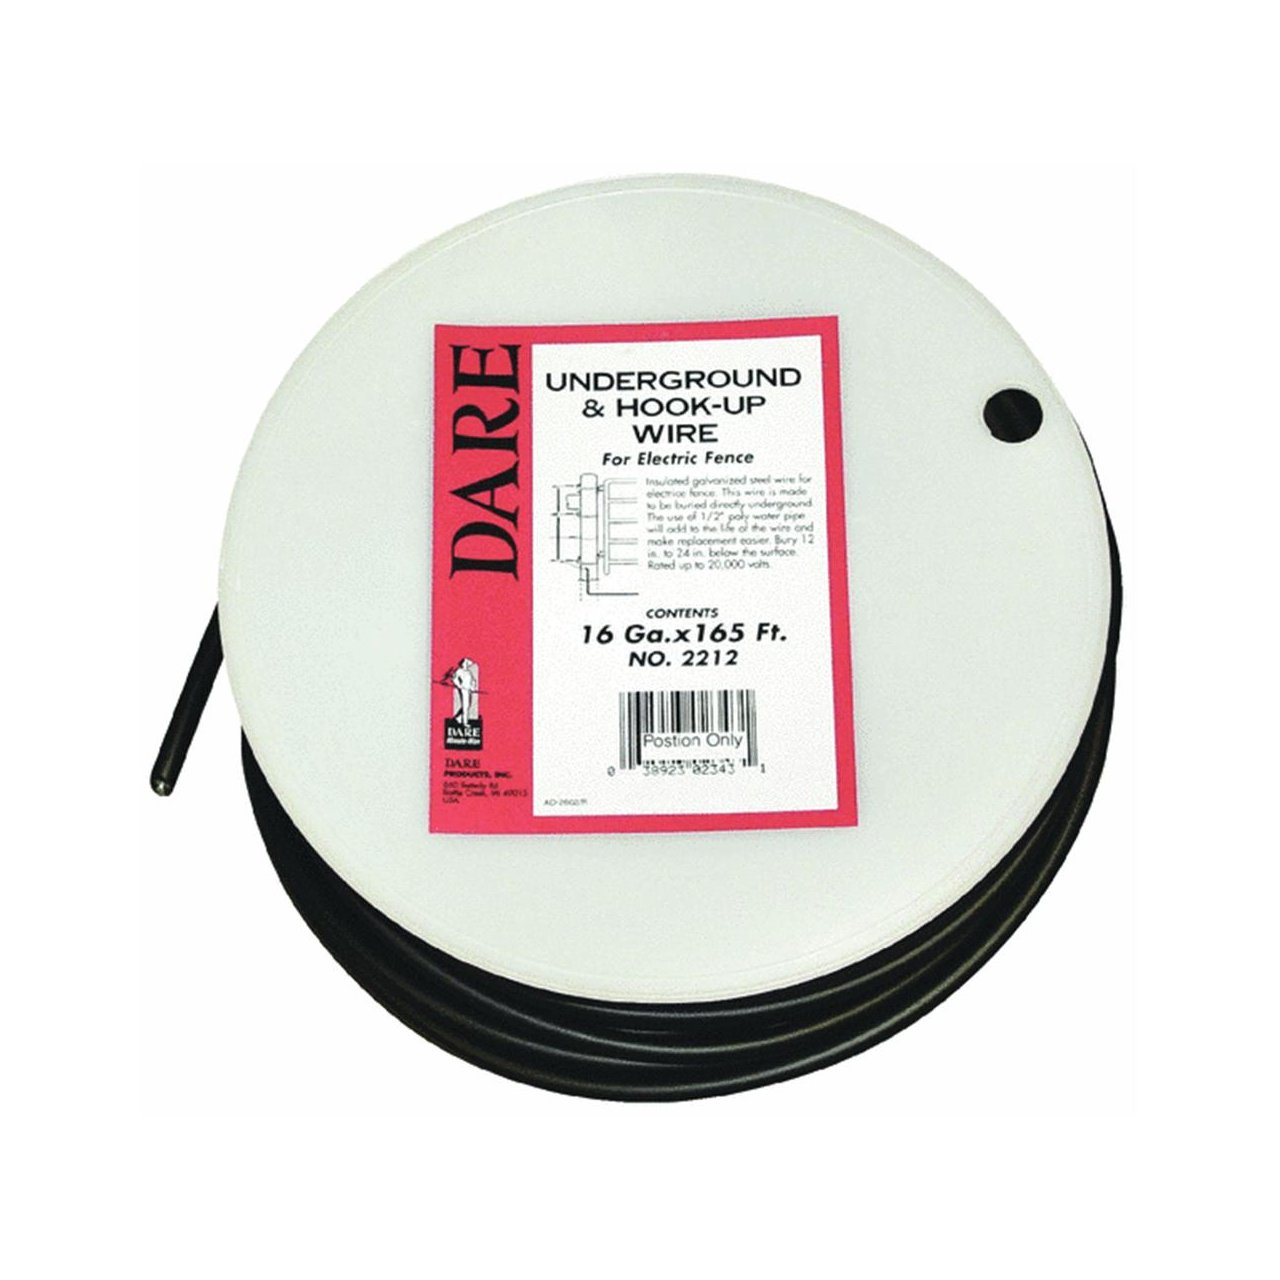 トップ Dare Dare Underground Hook-up & Hook-up Wire by Dare B000LNXSG4 B000LNXSG4, めだま家:a778b783 --- egreensolutions.ca